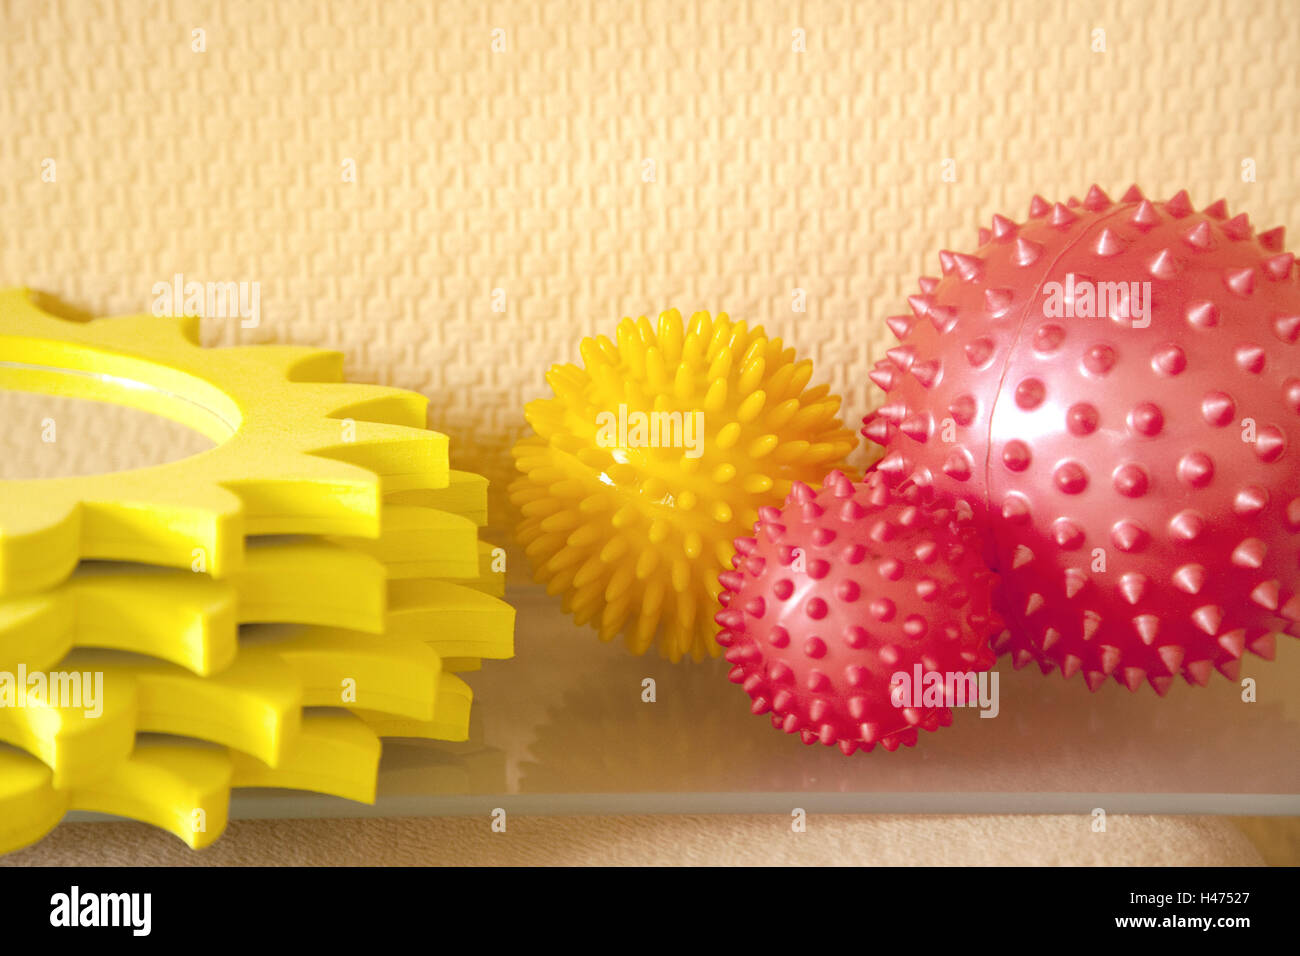 Massage balls, therapy, interior shot, toys, play, icon, accessory, heal, practise, massage, sizes, colours, passed - Stock Image